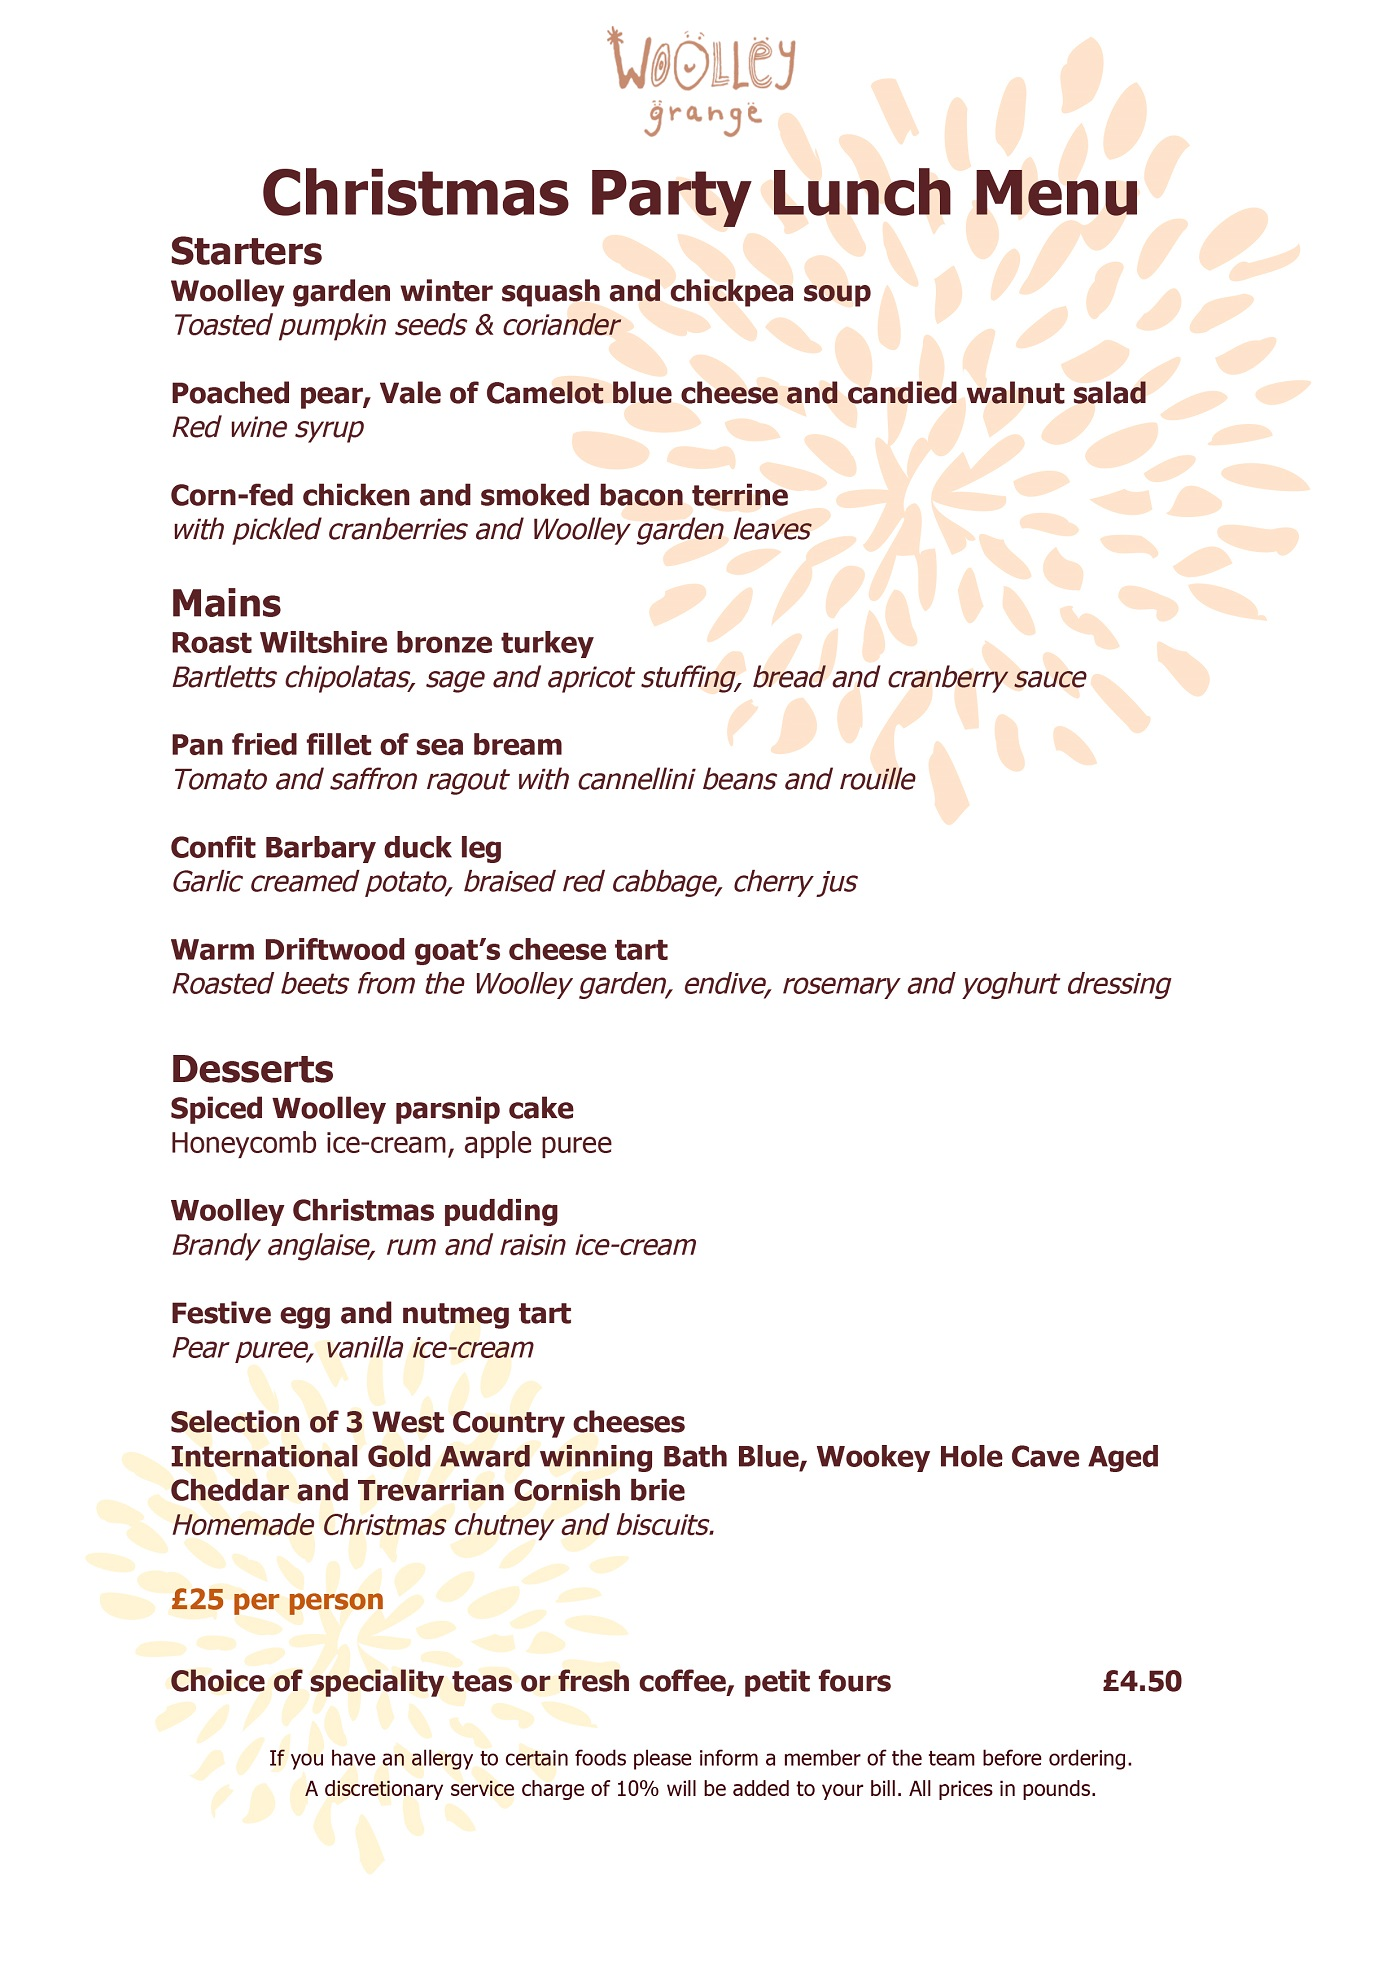 Christmas party lunch menu at Woolley Grange luxury family hotel in Bradford on Avon